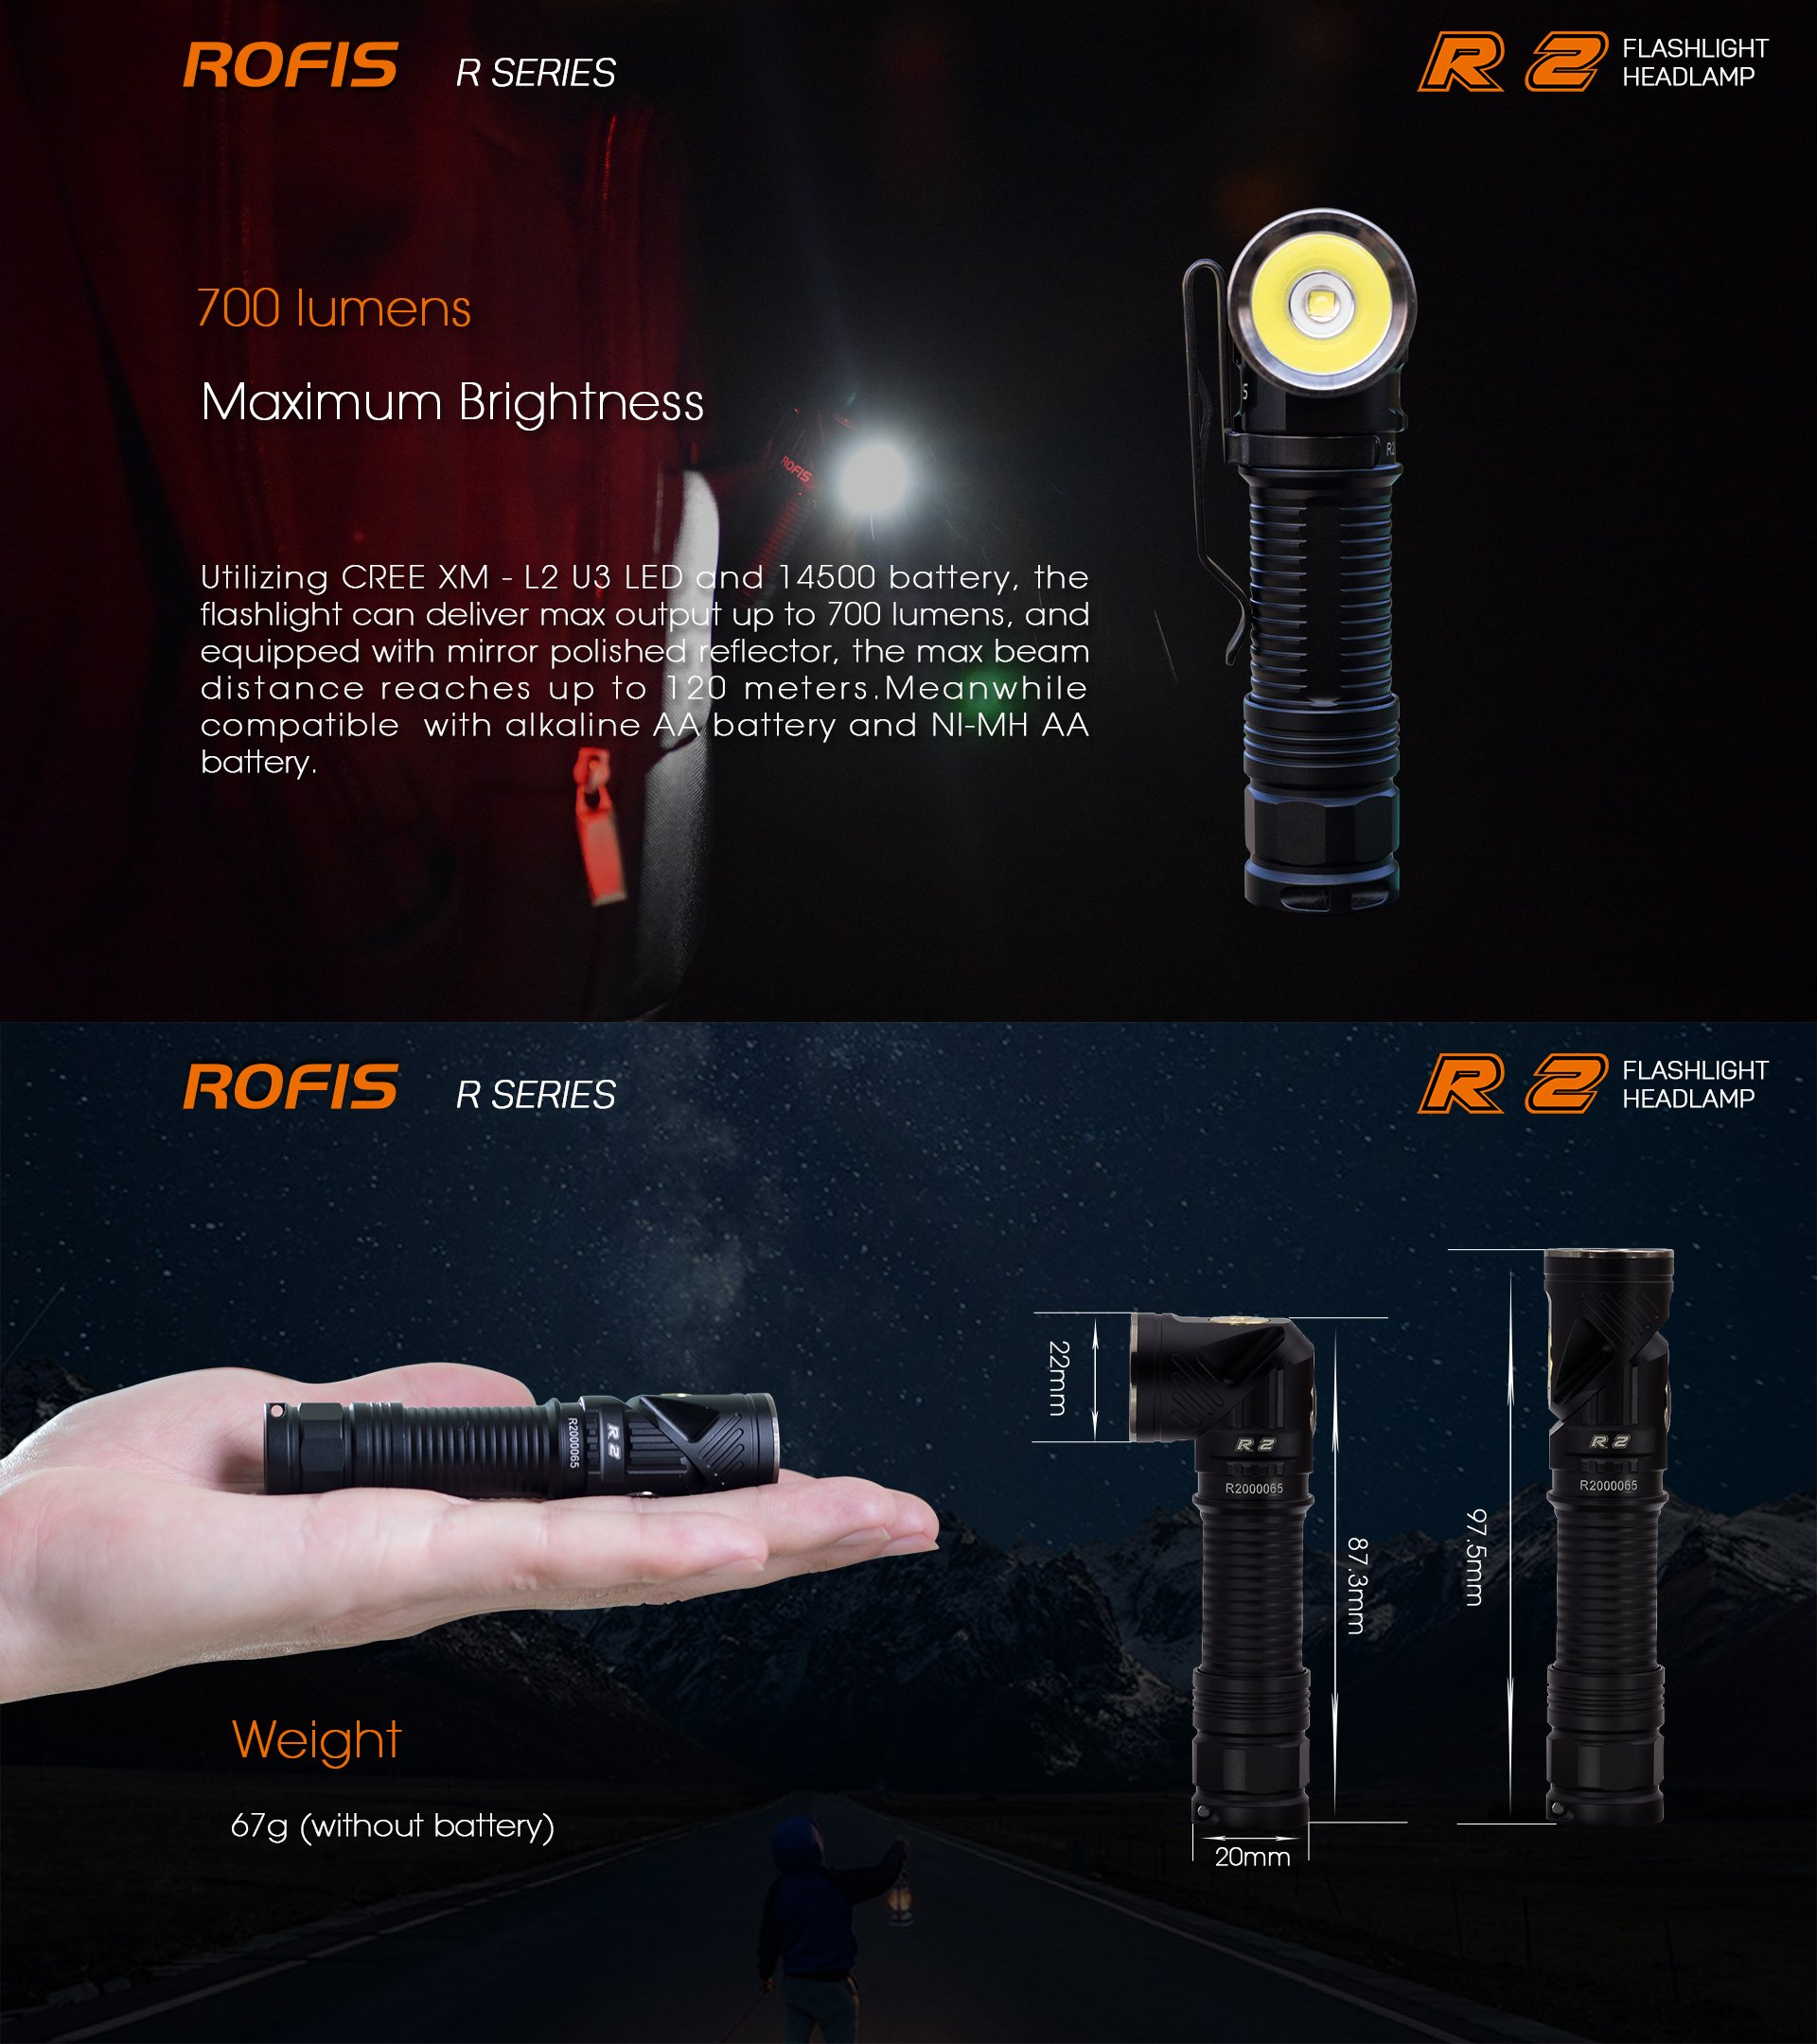 Rofis R2 CREE XM-L2 LED 700 Lumens Multifunctional Magnetic USB Rechargeable Adjustable-head Flashlight Compact 14500 Flashlight,with 14500 Battery,Charging Cable and Headband (Neutral White(5000 K)) by Rofis (Image #5)